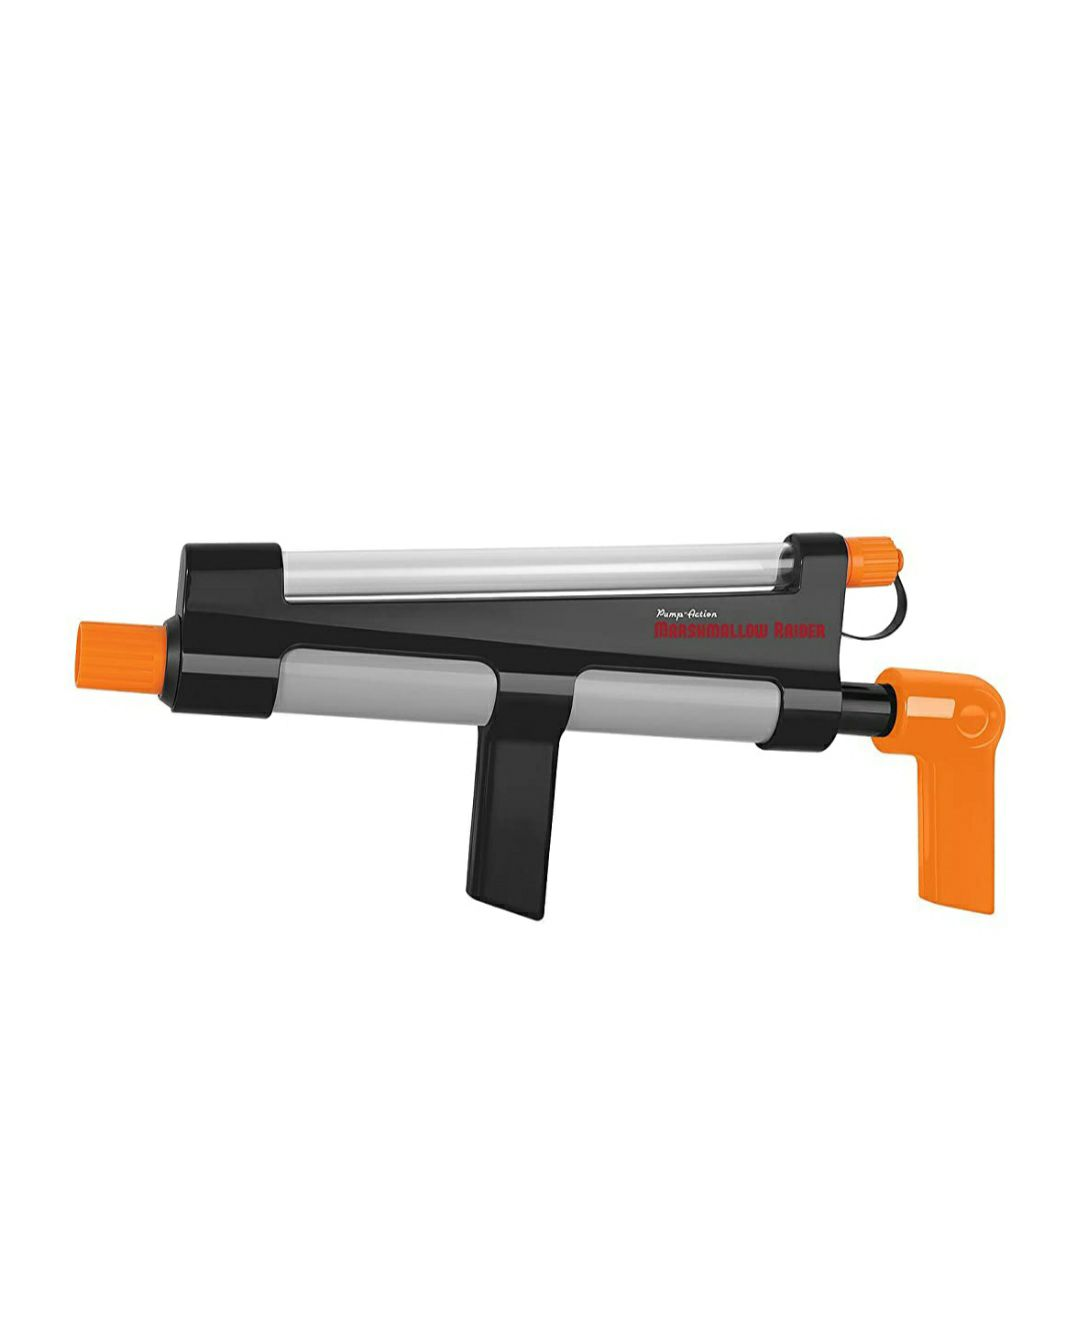 New Pump action marshmallow raider Gun